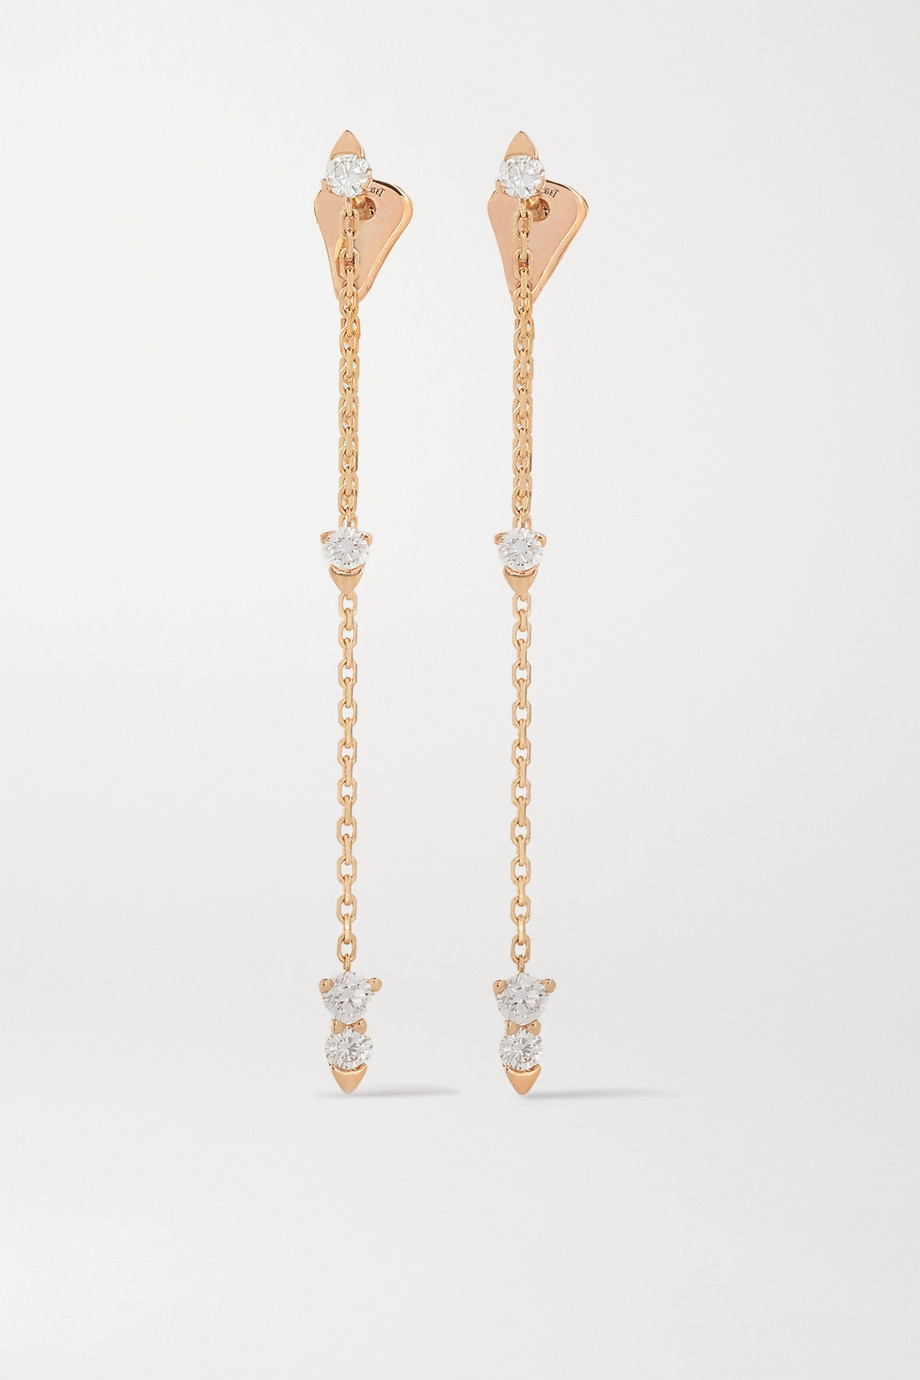 Piaget Sunlight 18-karat rose gold diamond earrings